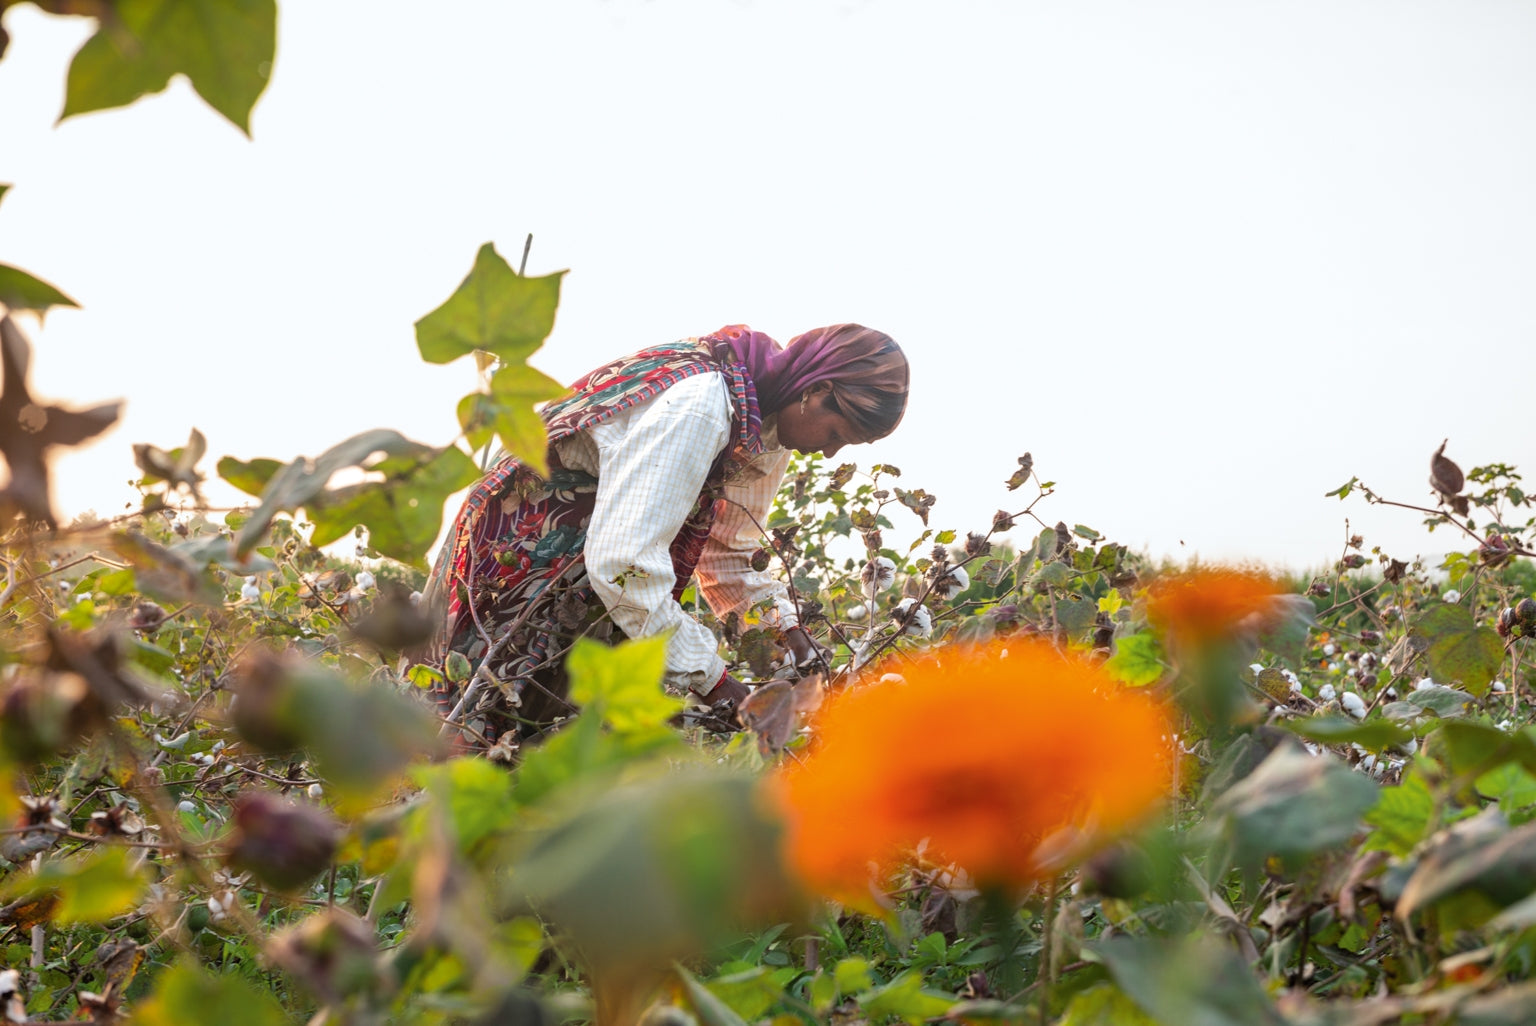 A farmer inspects a cotton plant on one of more than 150 small-scale farms working toward regenerative organic certification in India. Brightly colored marigolds are planted among other plants in this natural system to attract insects as a nontoxic form of pest control. Photo: Tim Davis.